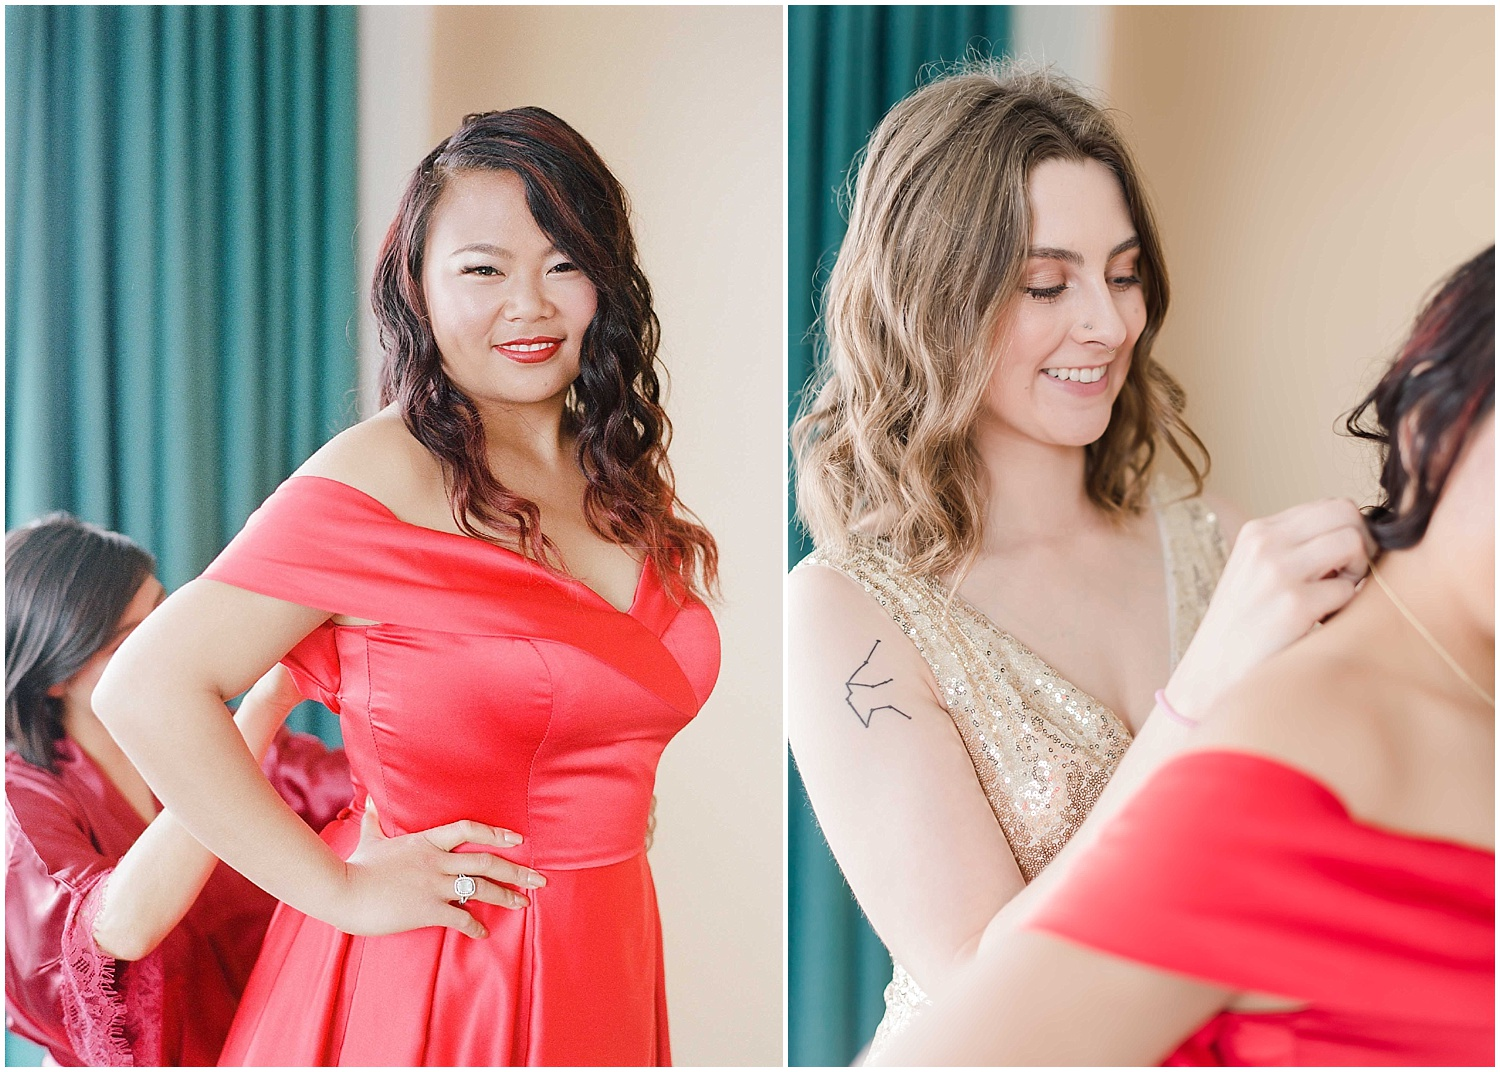 bride getting ready, wearing a red wedding dress in an bride and bridesmaids getting ready at an intimate wedding in hoboken new jersey at the W Hotel